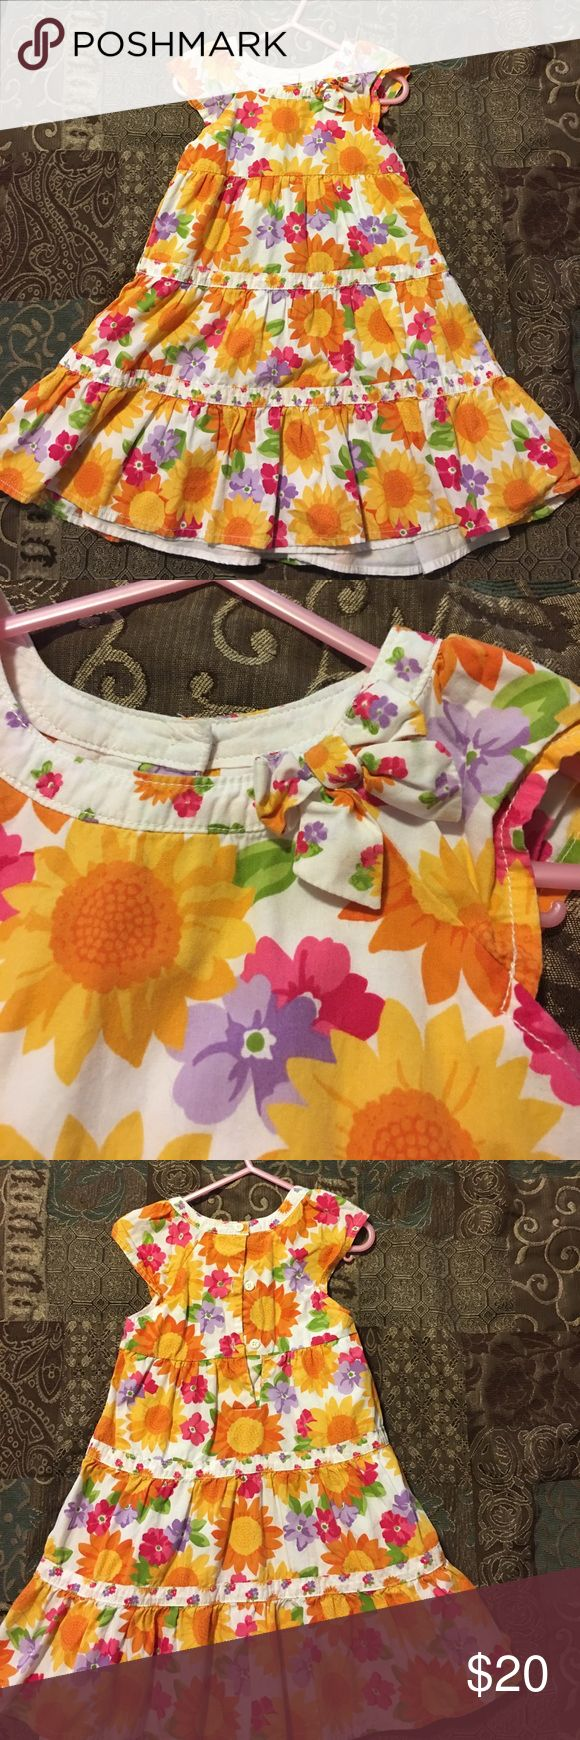 Gymboree sunflower dress 🌻💕 This is a beautiful Gymboree sunflower 🌻 dress 😊. It's absolutely adorable on too 😍💝💖 Size 4T Gymboree Dresses Casual